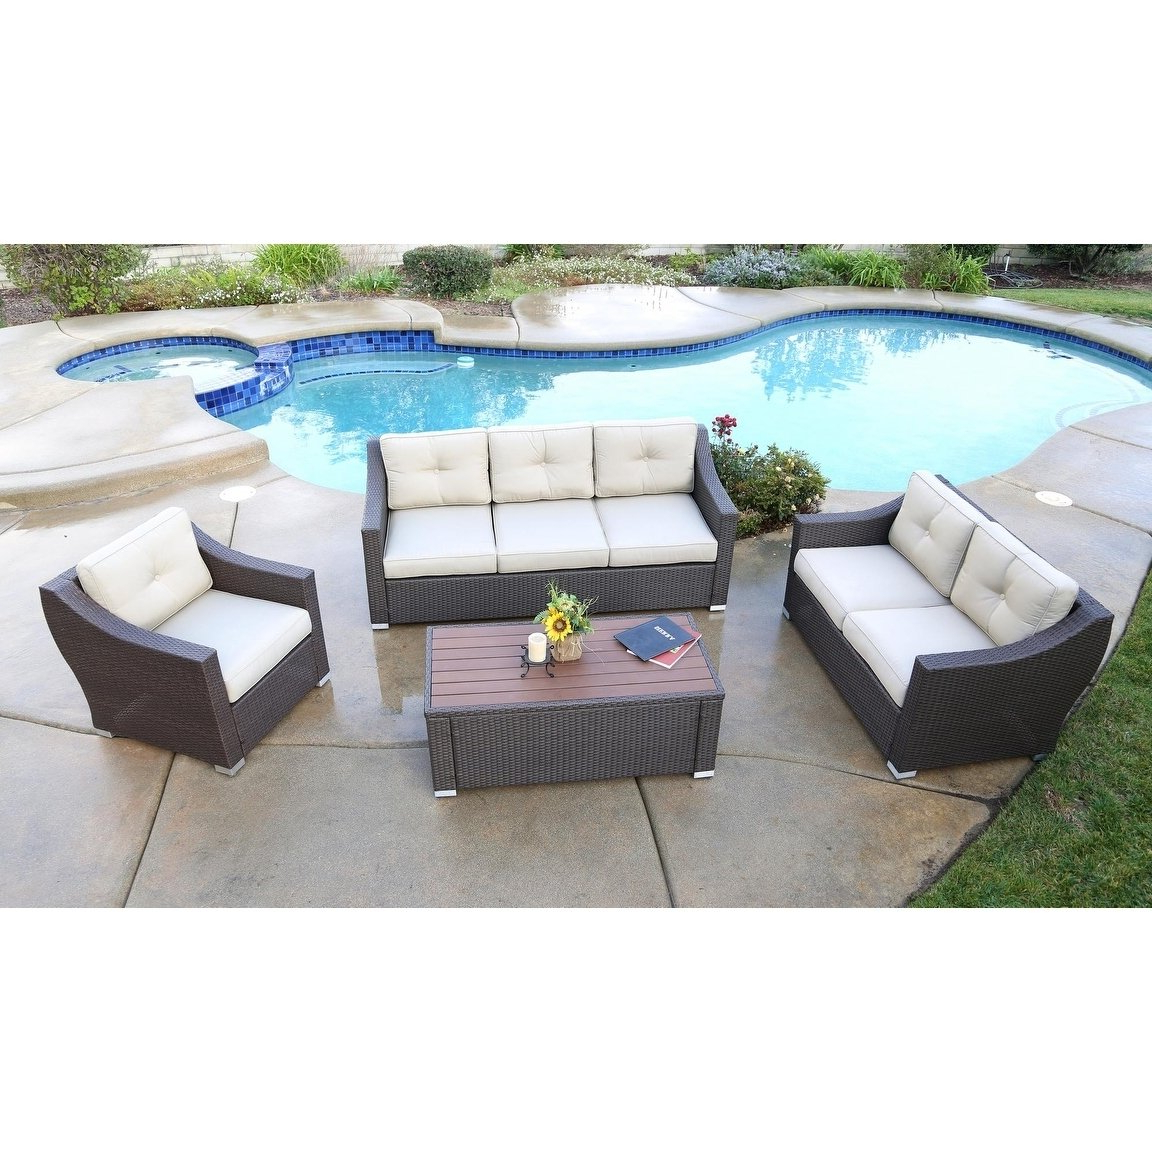 Waterbury Patio Sectionals With Cushions Regarding Well Liked South Beach 4 Pieces Deep Seating Set, Brown, Outdoor Patio (Gallery 19 of 25)